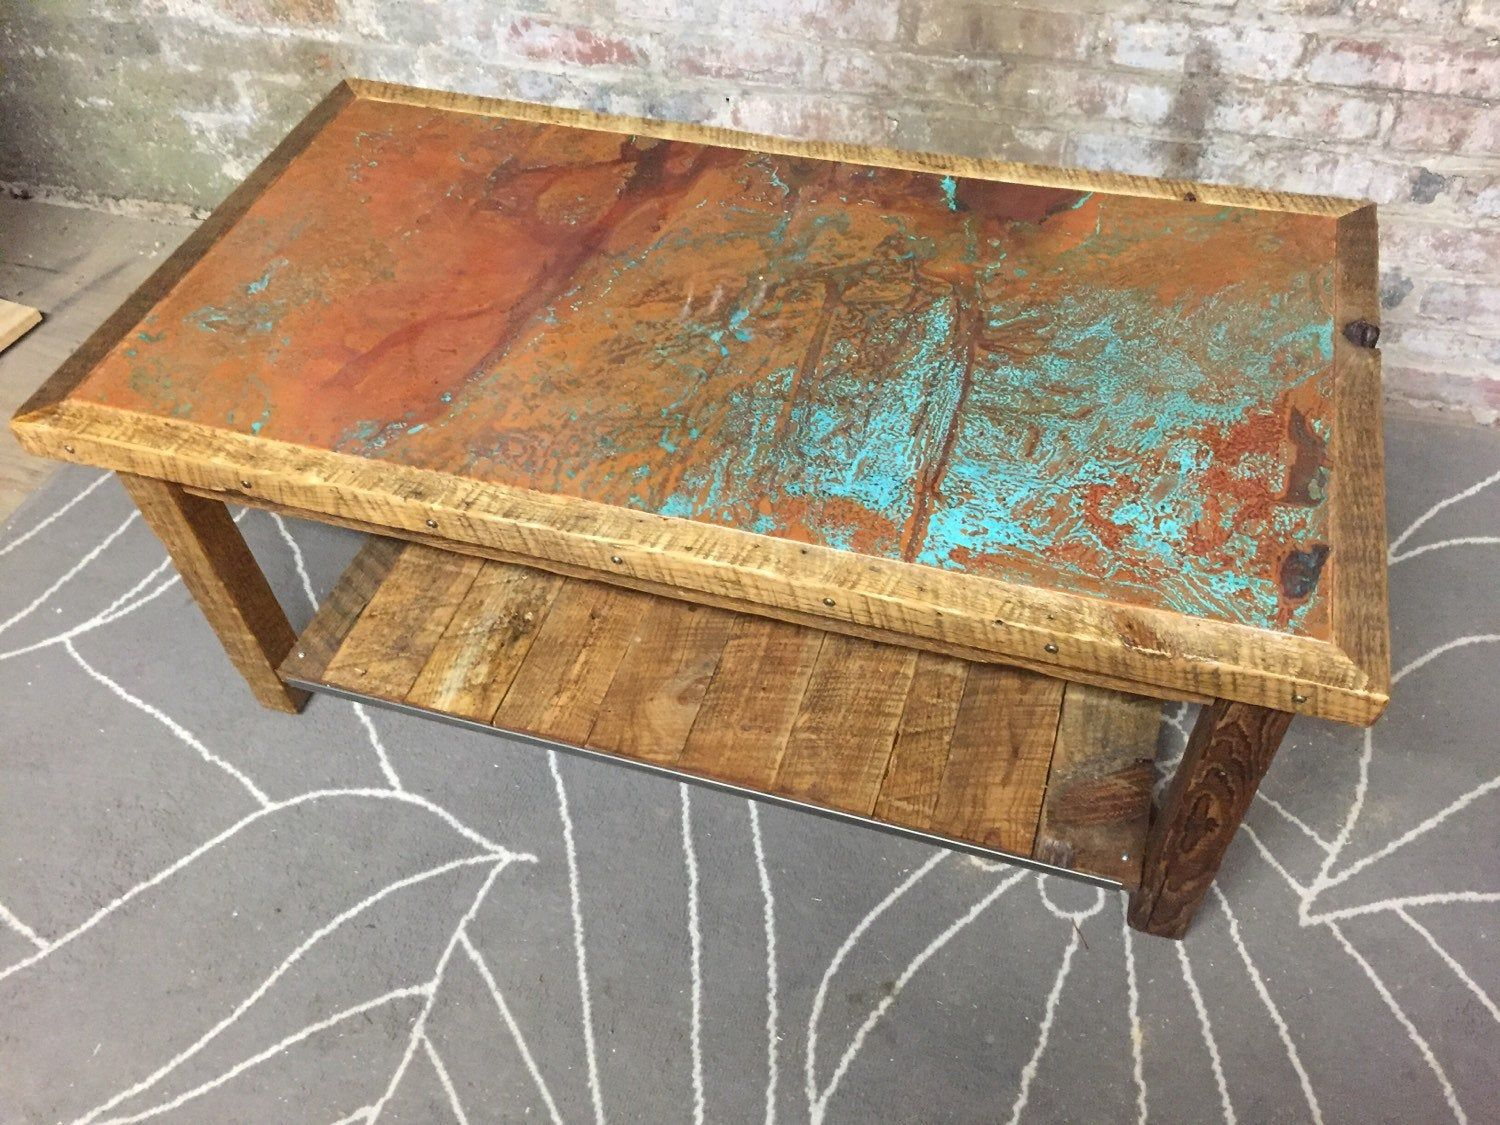 Coffee Table Etsy In 2020 Copper Coffee Table Coffee Table Wood Reclaimed Wood Coffee Table [ 1125 x 1500 Pixel ]